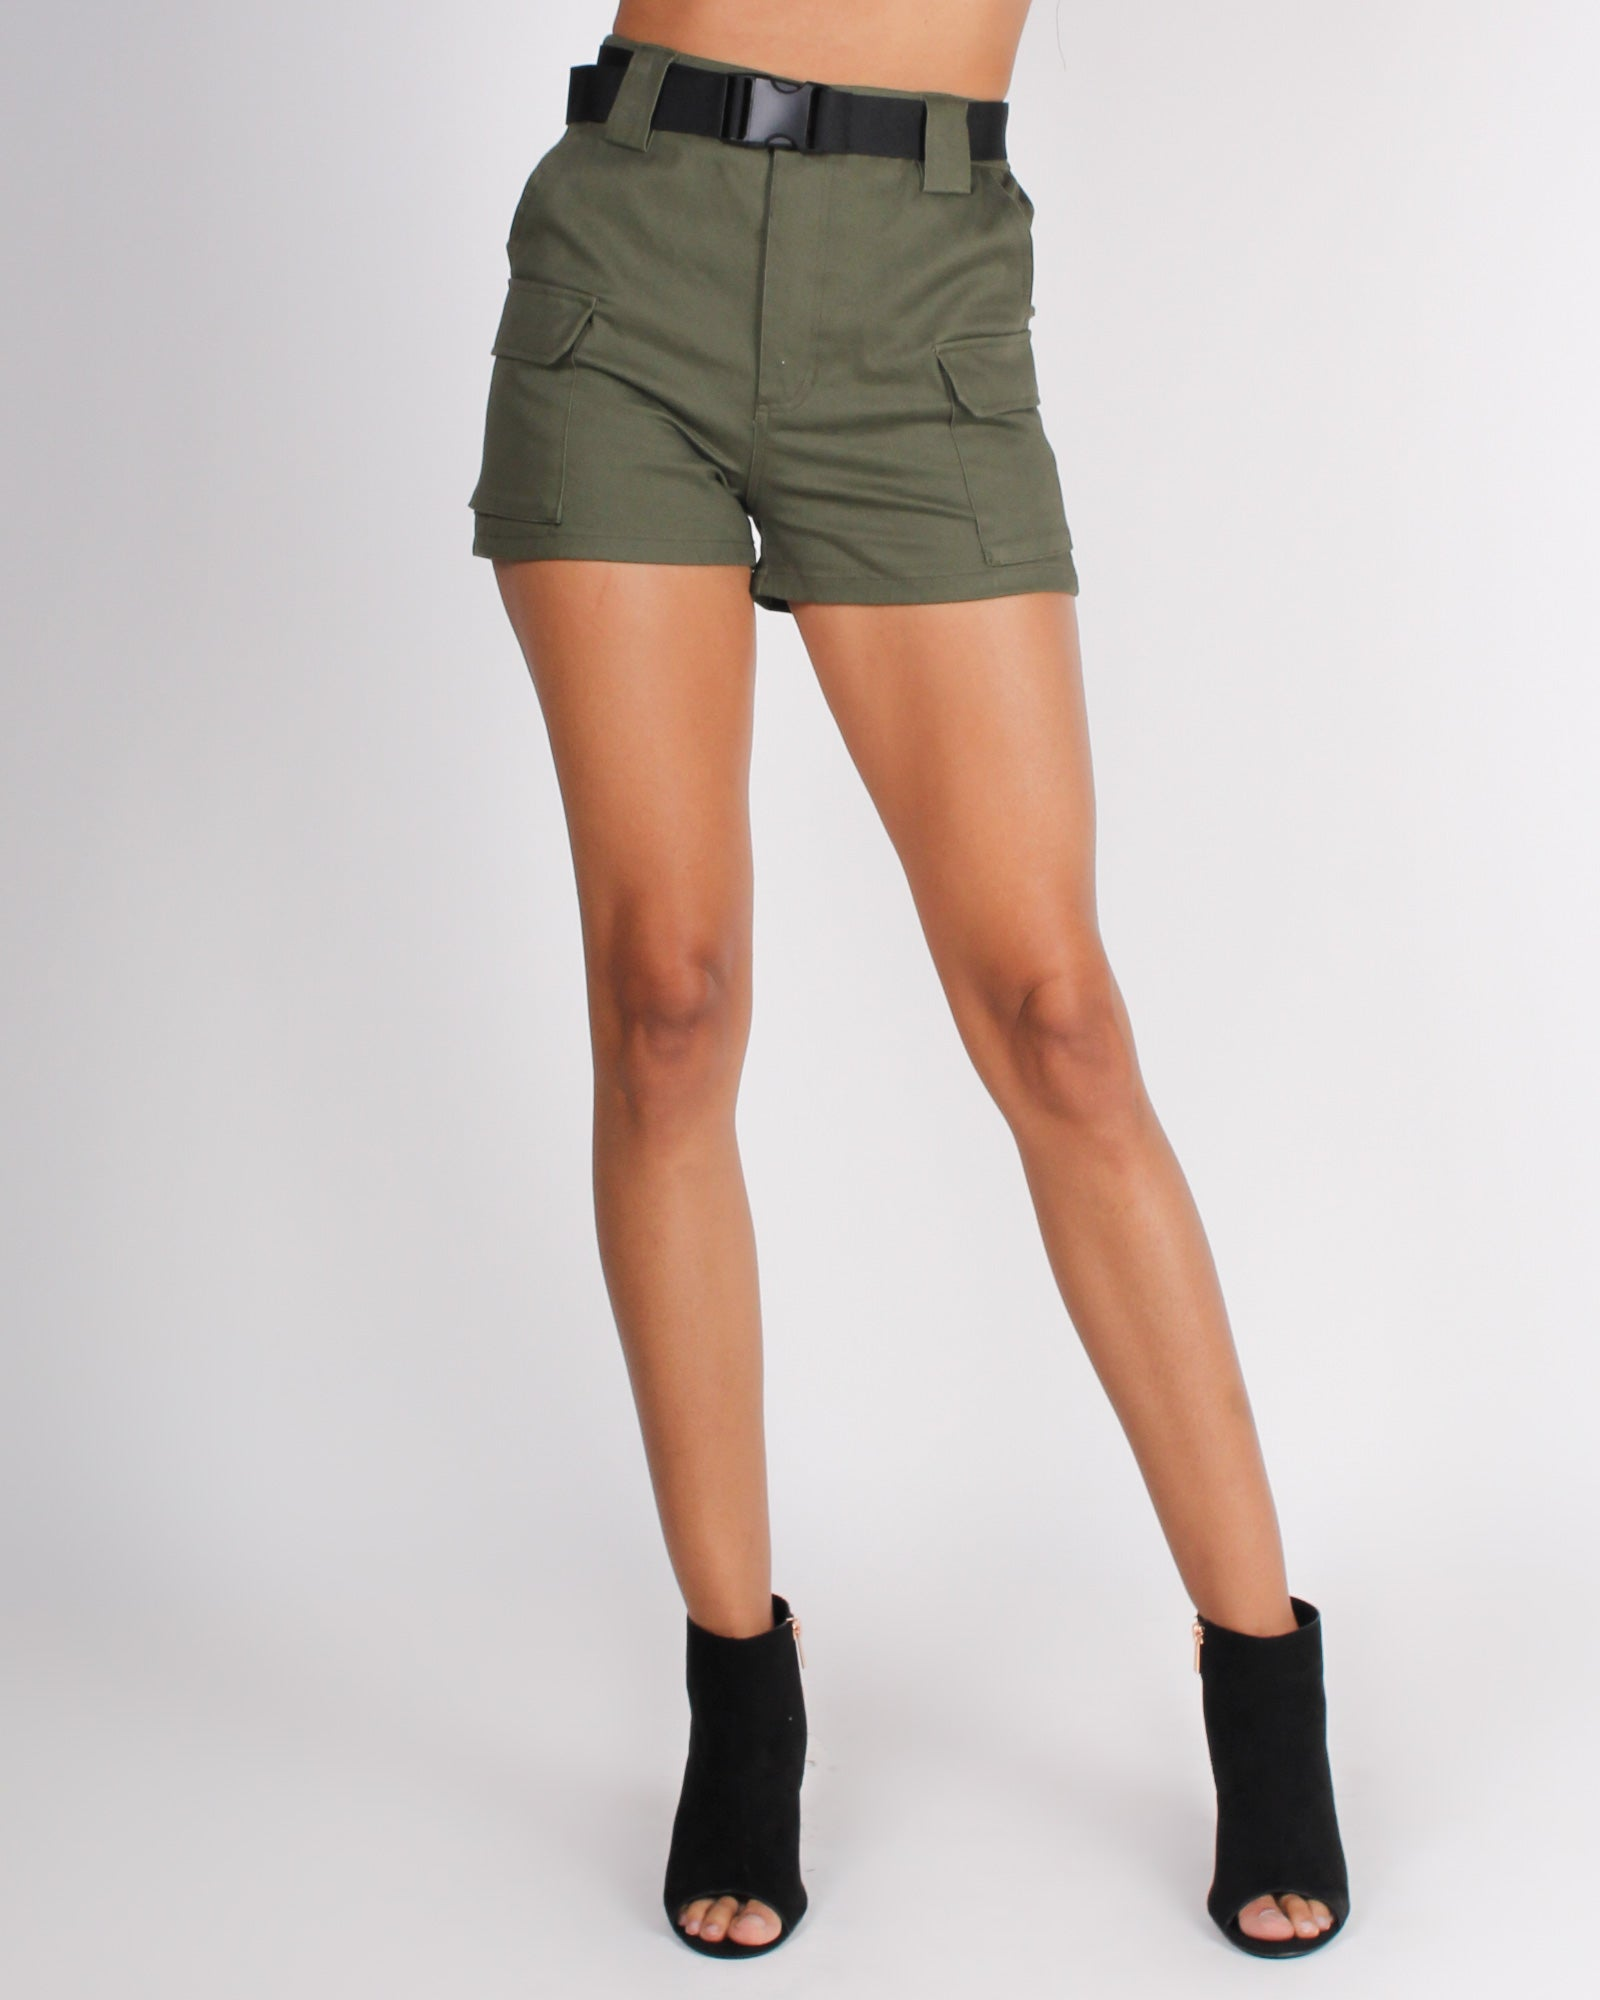 Fashion Q Shop Q Go Your Own Way Shorts (Olive) P6040